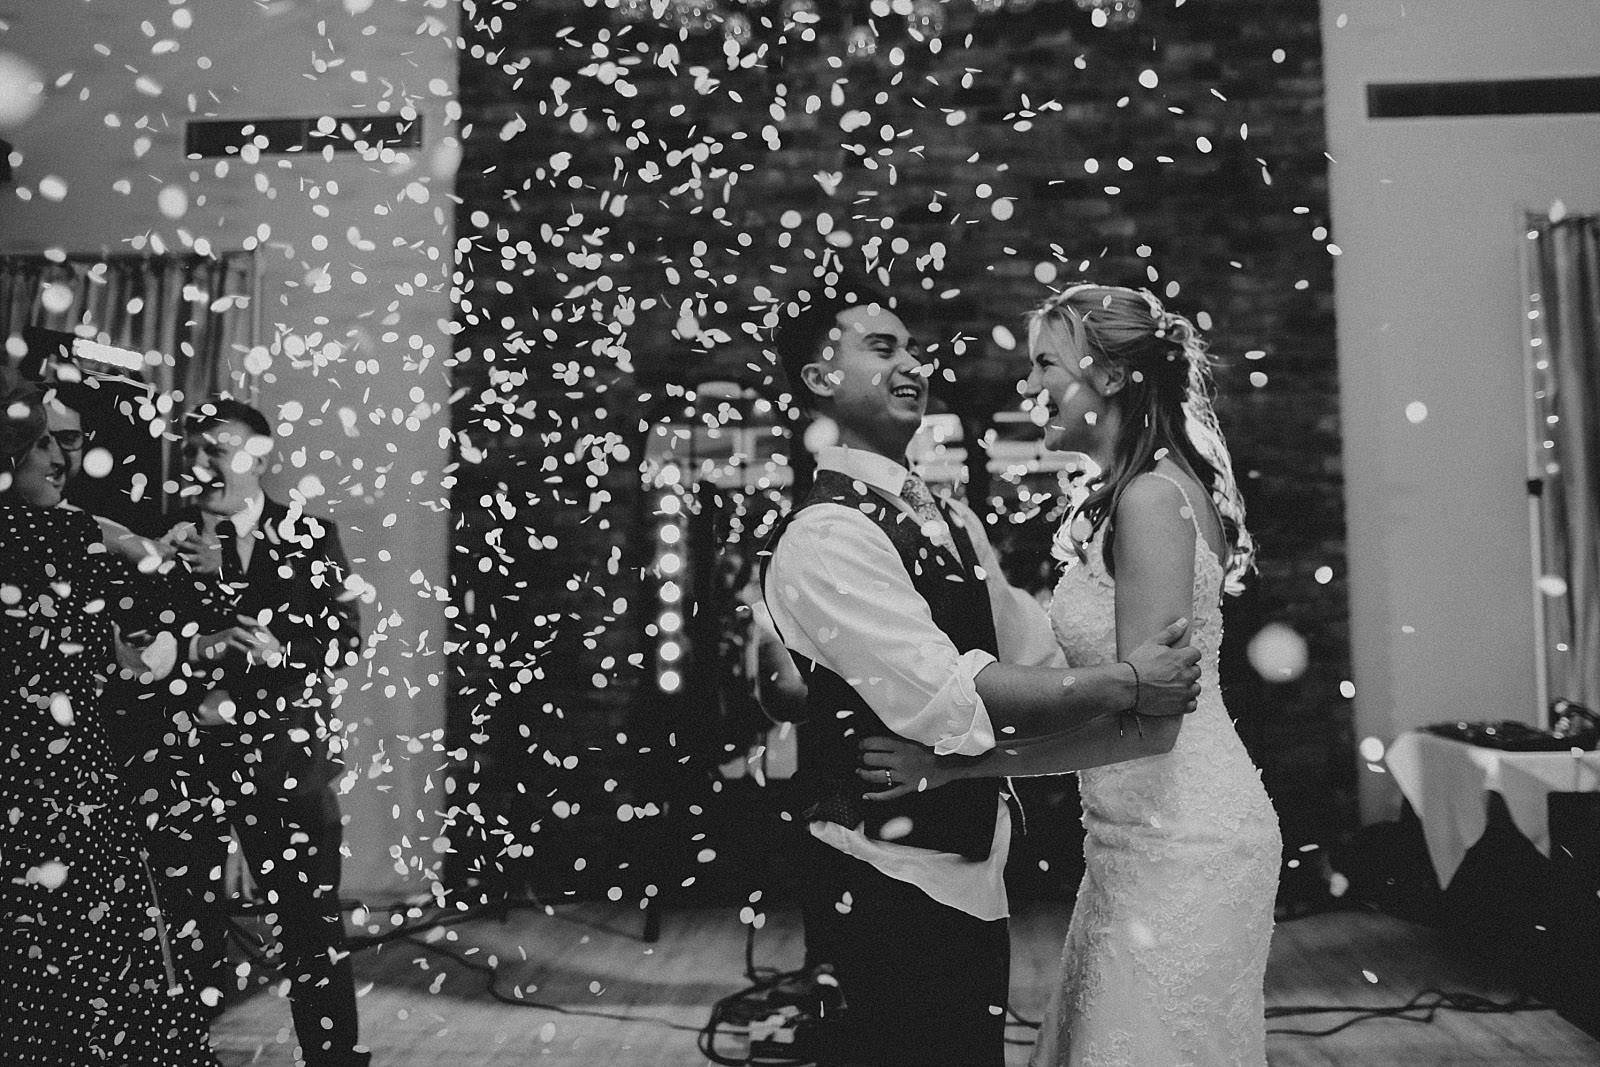 confetti falls for the bride and groom during first dance